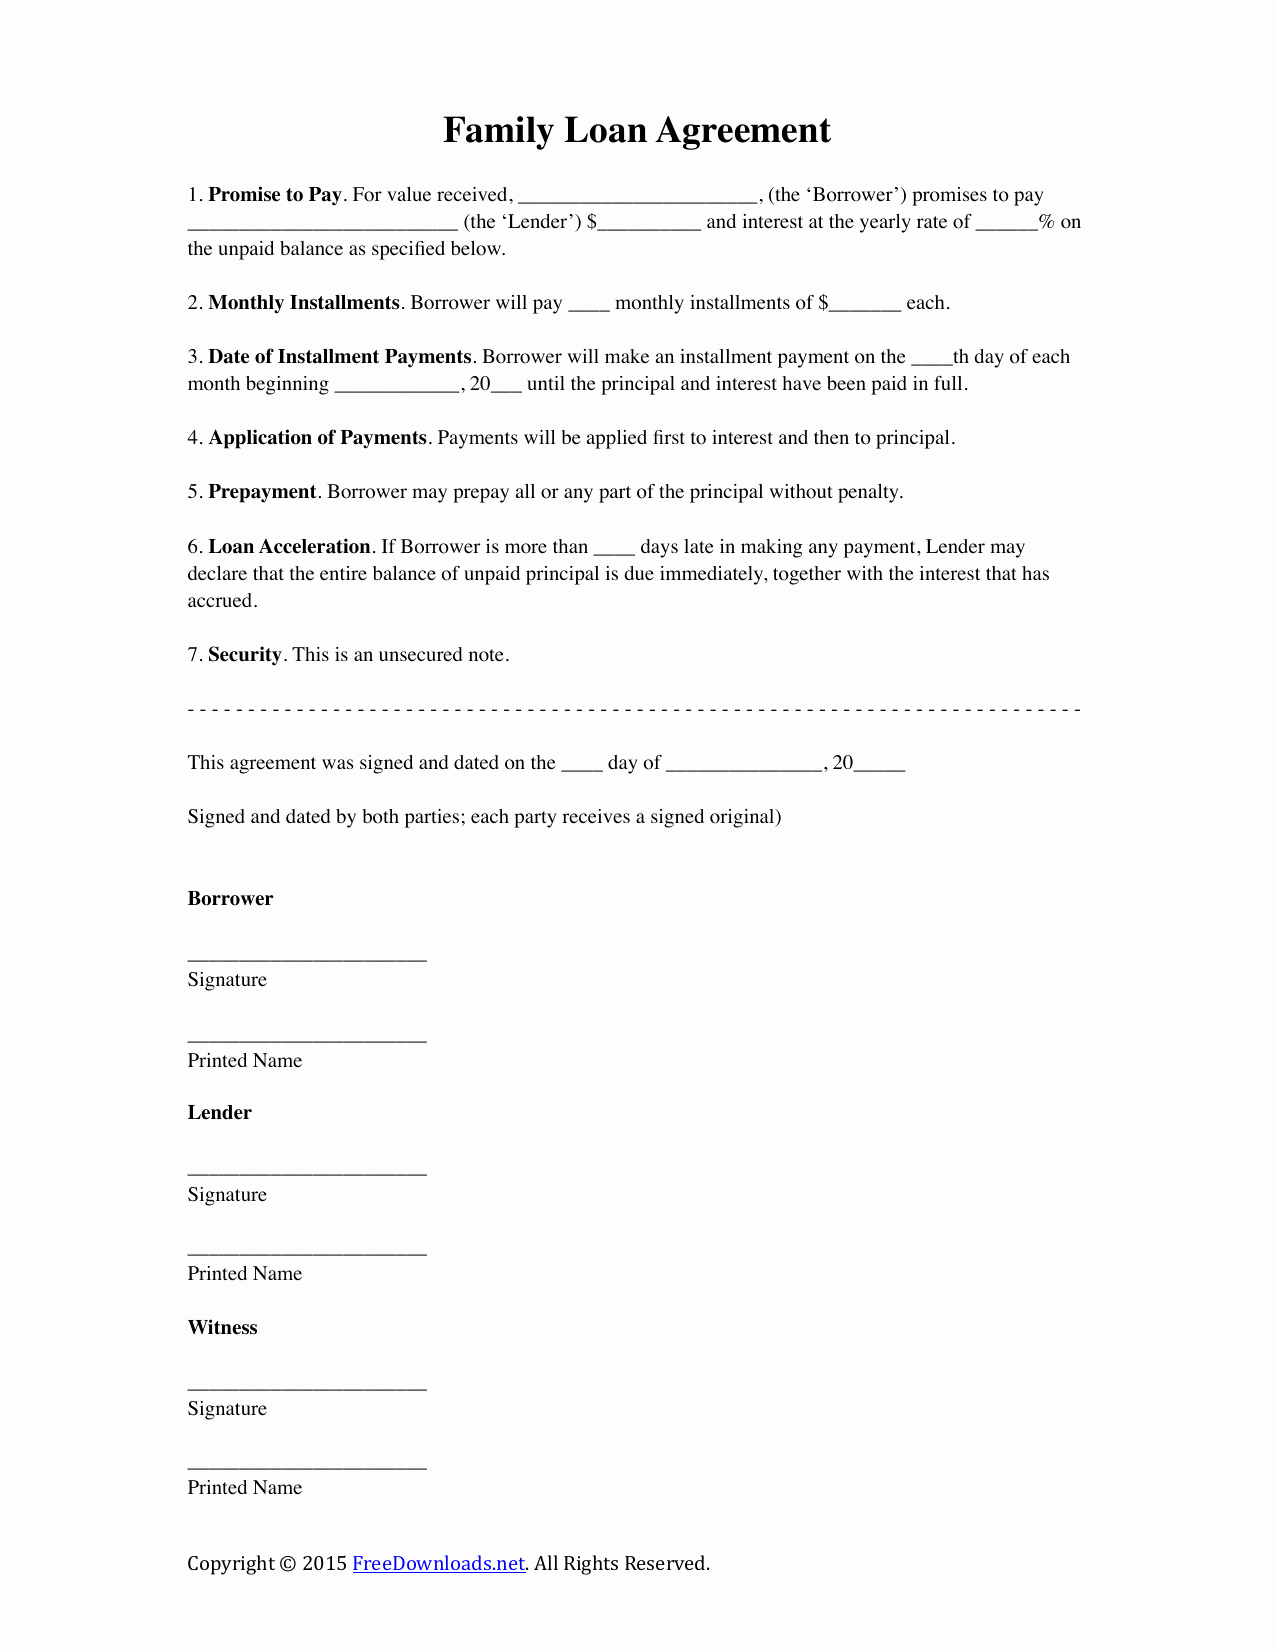 Free Loan Agreement Template Word Unique Download Family Loan Agreement Template Pdf Rtf